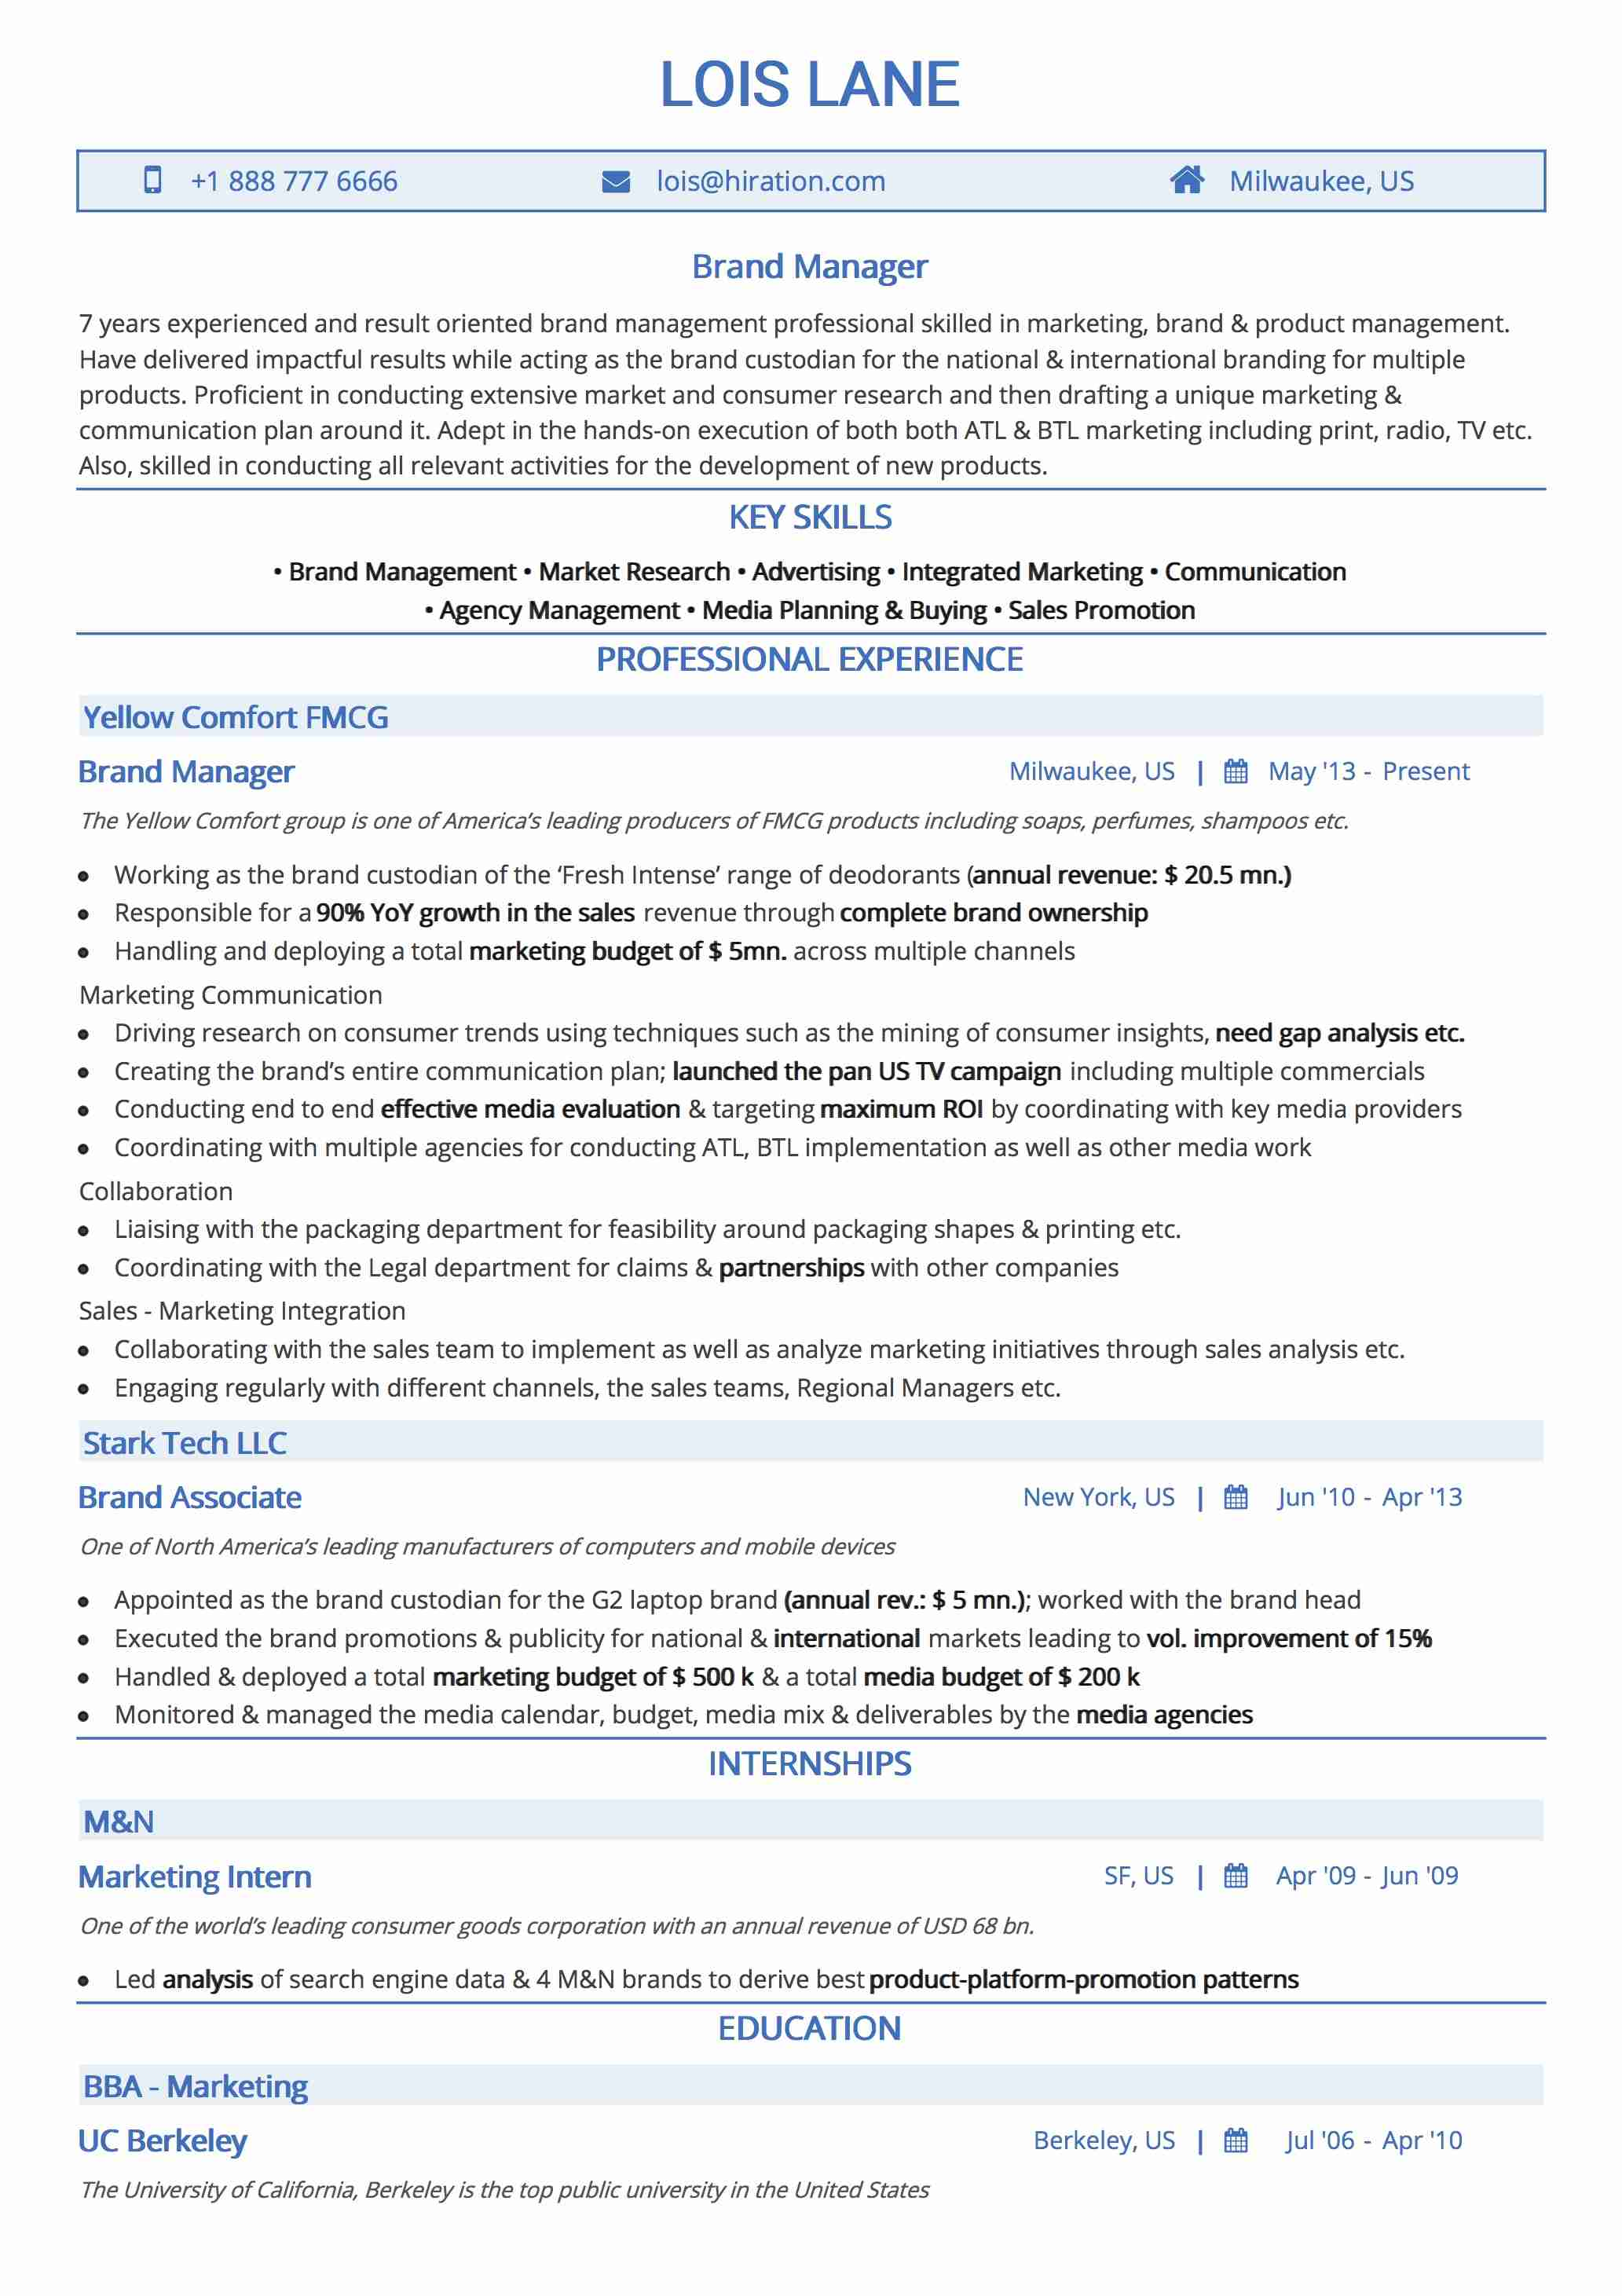 Resume Template: Traditional Blue